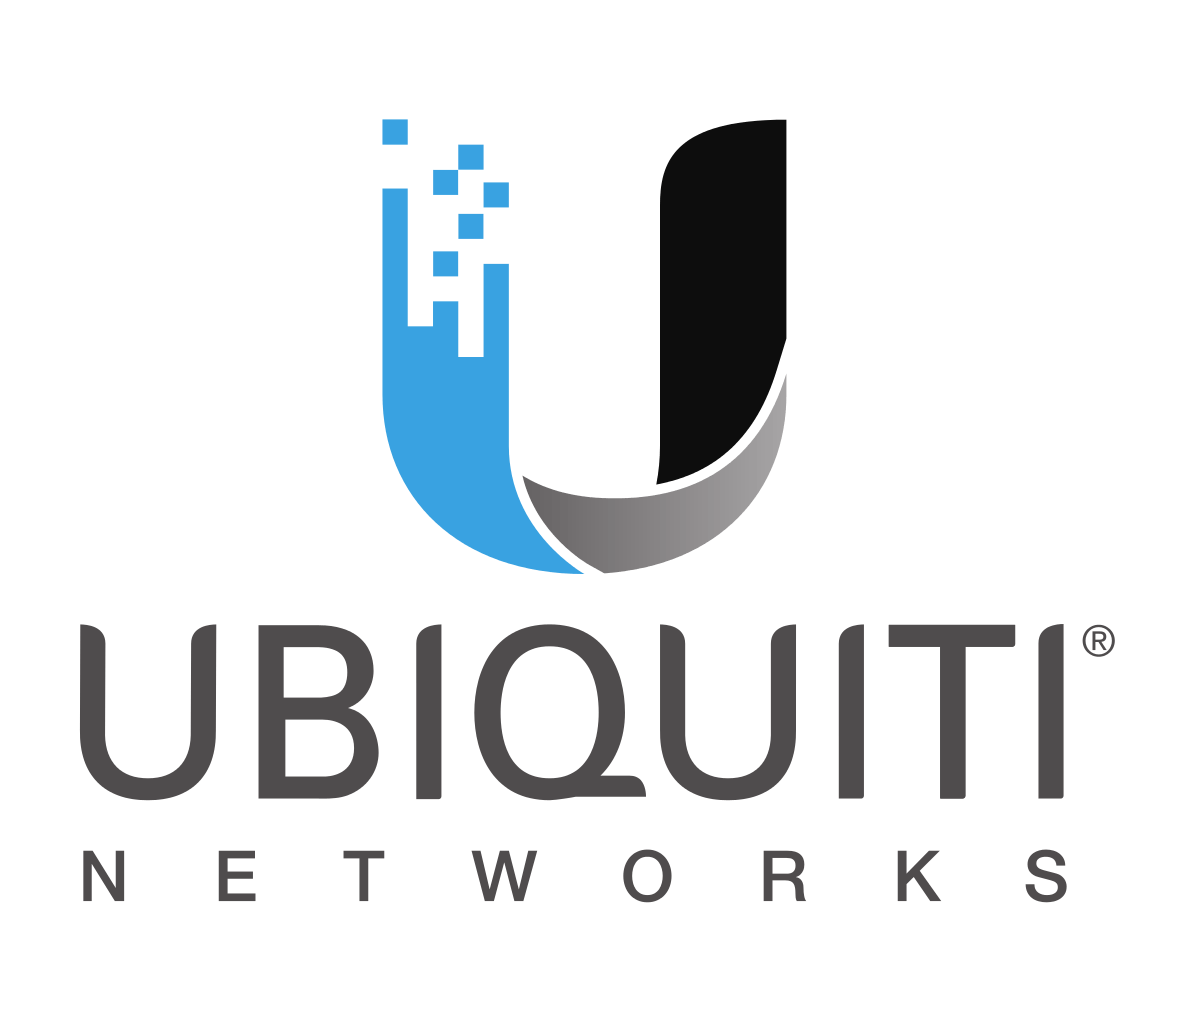 802 1x authentication with Unifi controller and Ubiquiti access